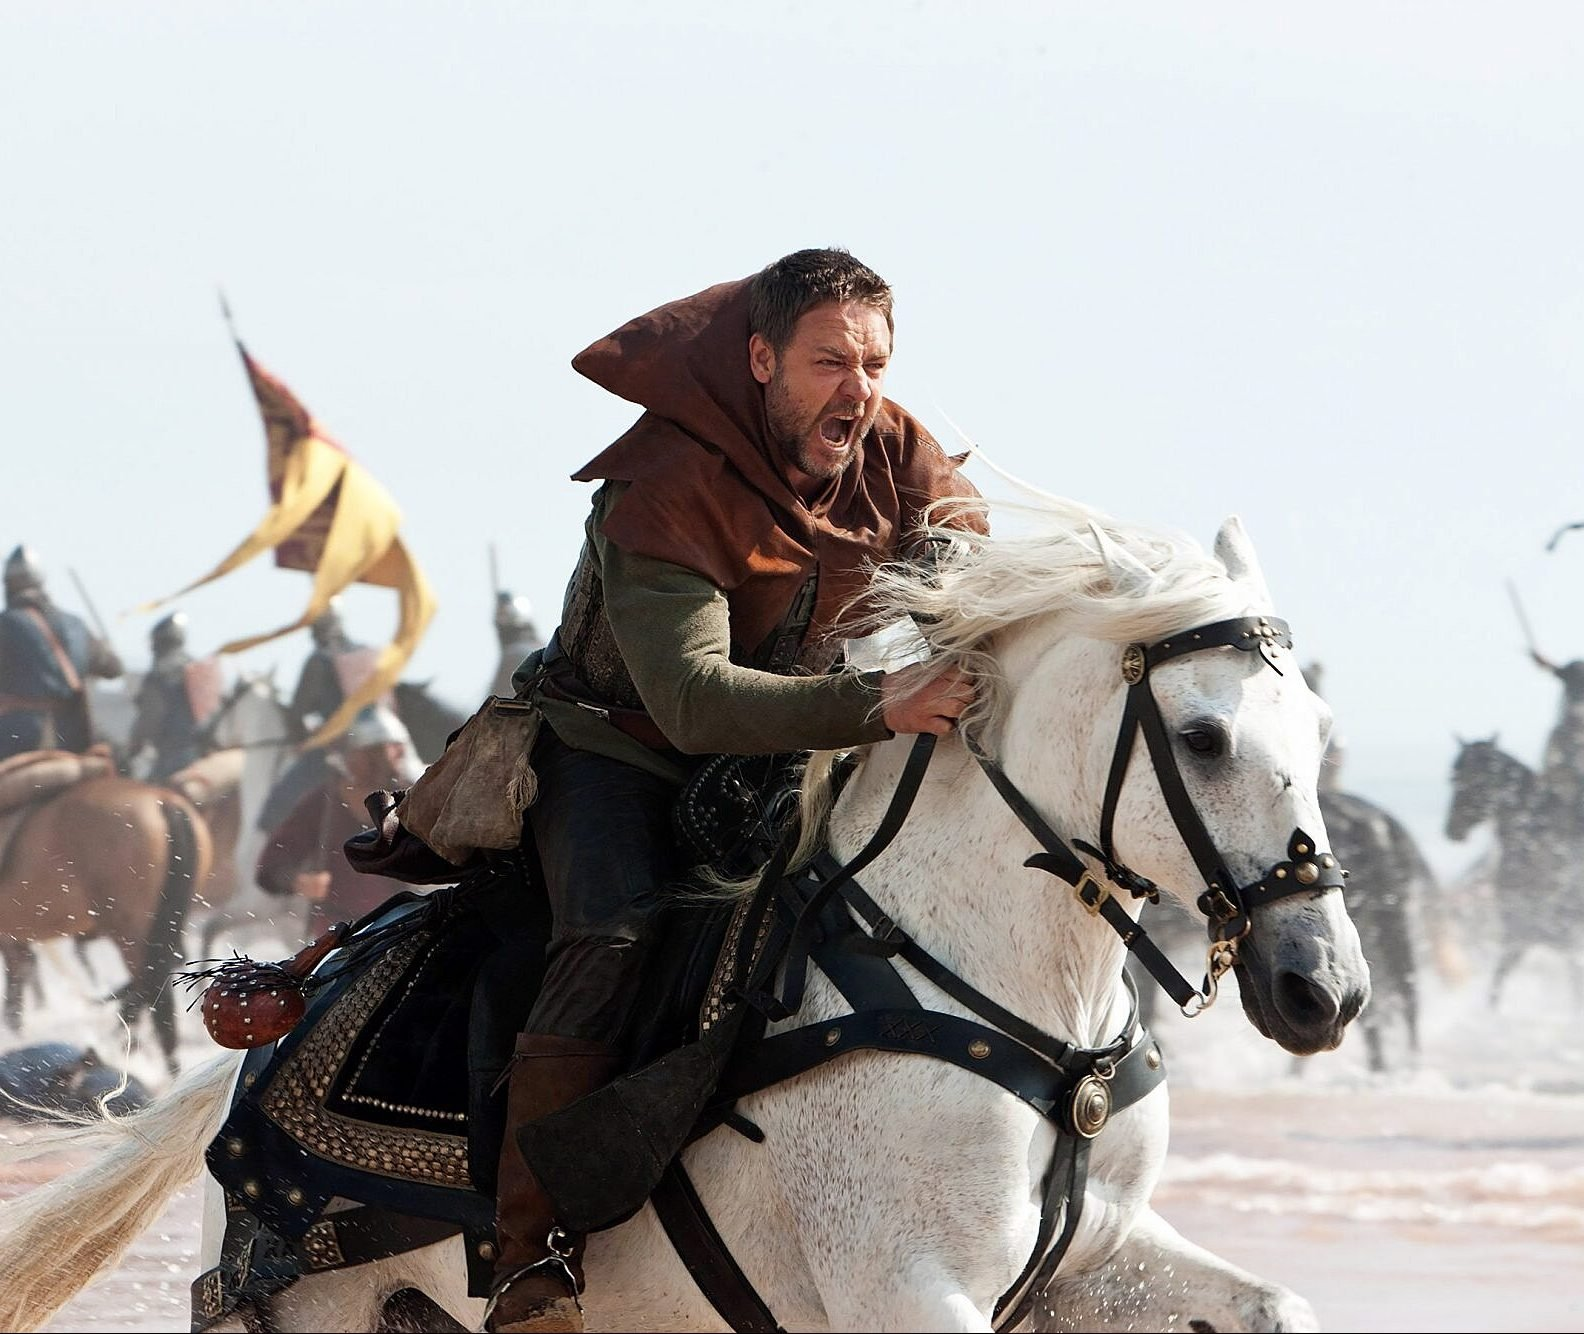 image 44 e1621421260648 20 Things You Never Knew About Russell Crowe